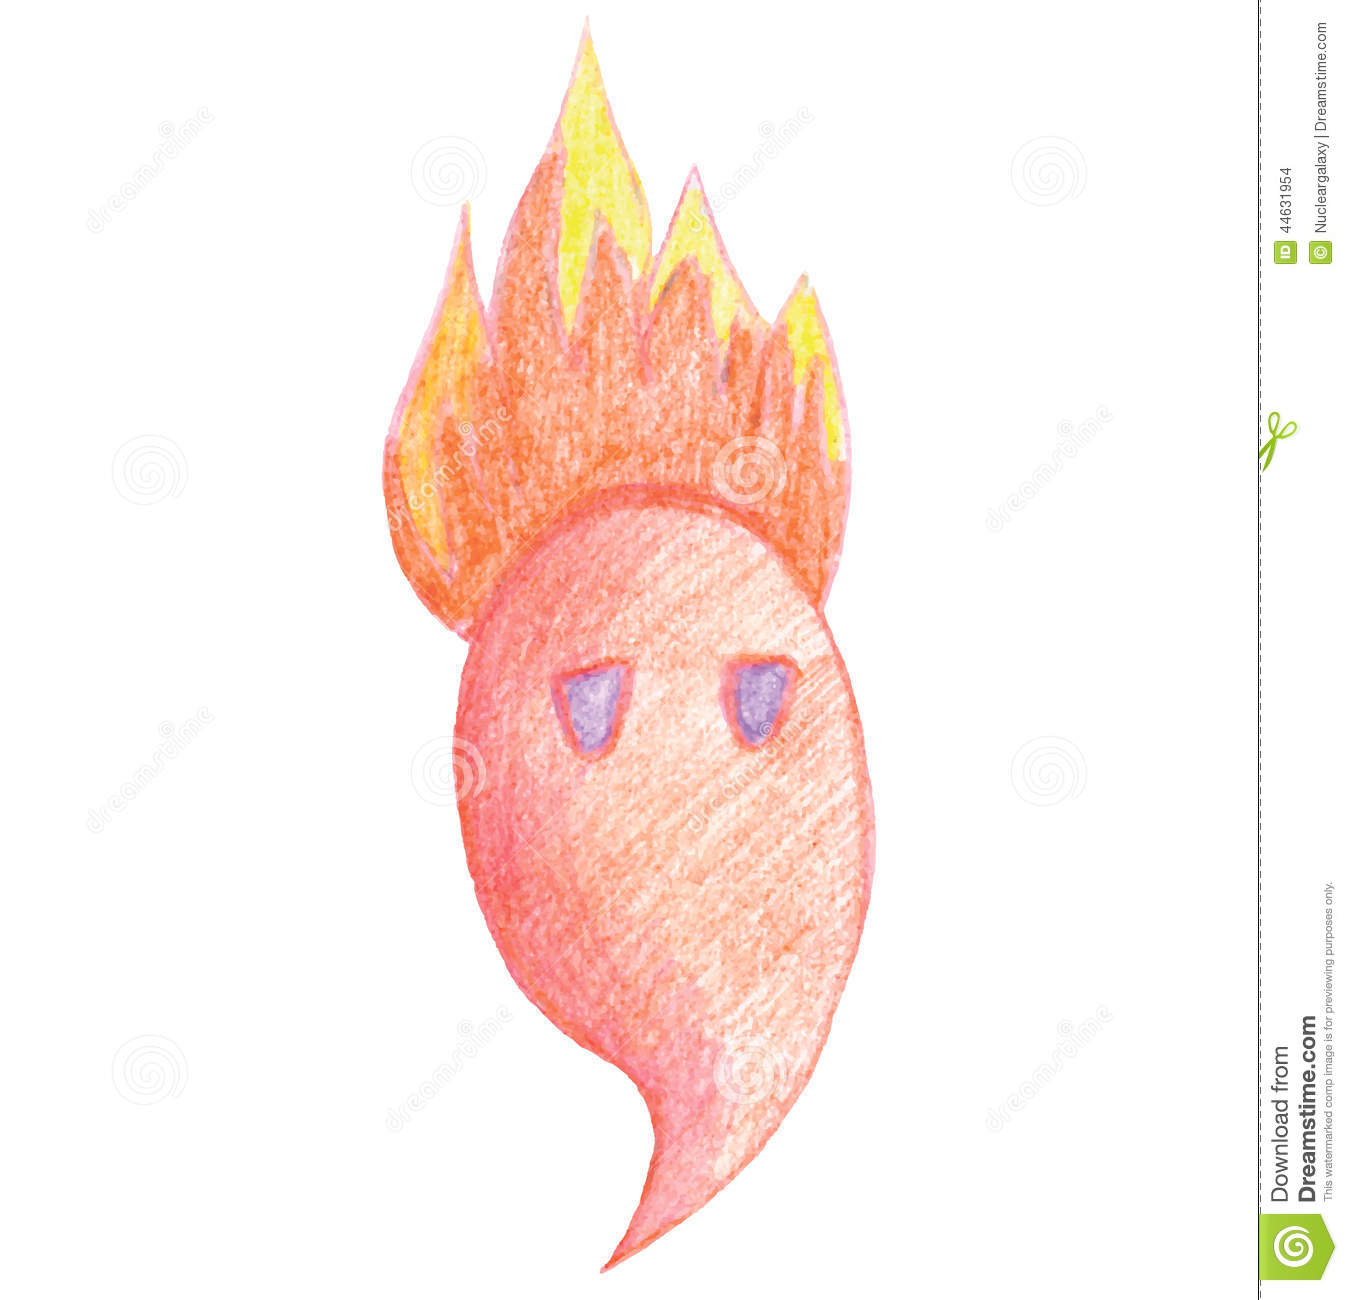 Cute Fiery Monster Draw A Pencil Stock Vector Illustration Of Icon